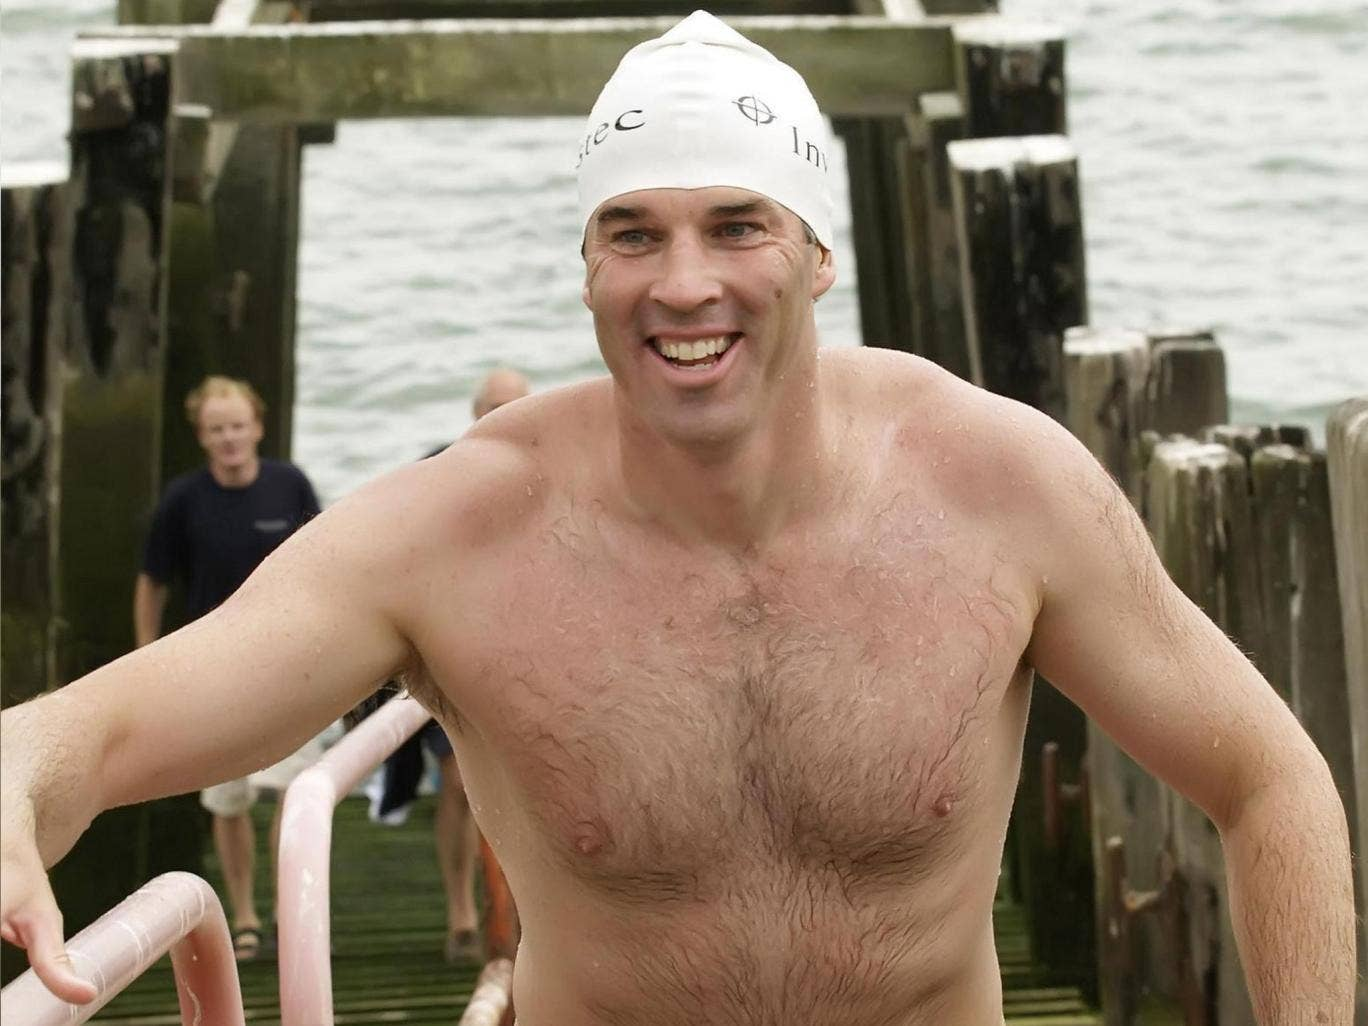 Lewis Pugh will undertake seven swims in the seven seas to highlight the need for protected areas in oceans around the world